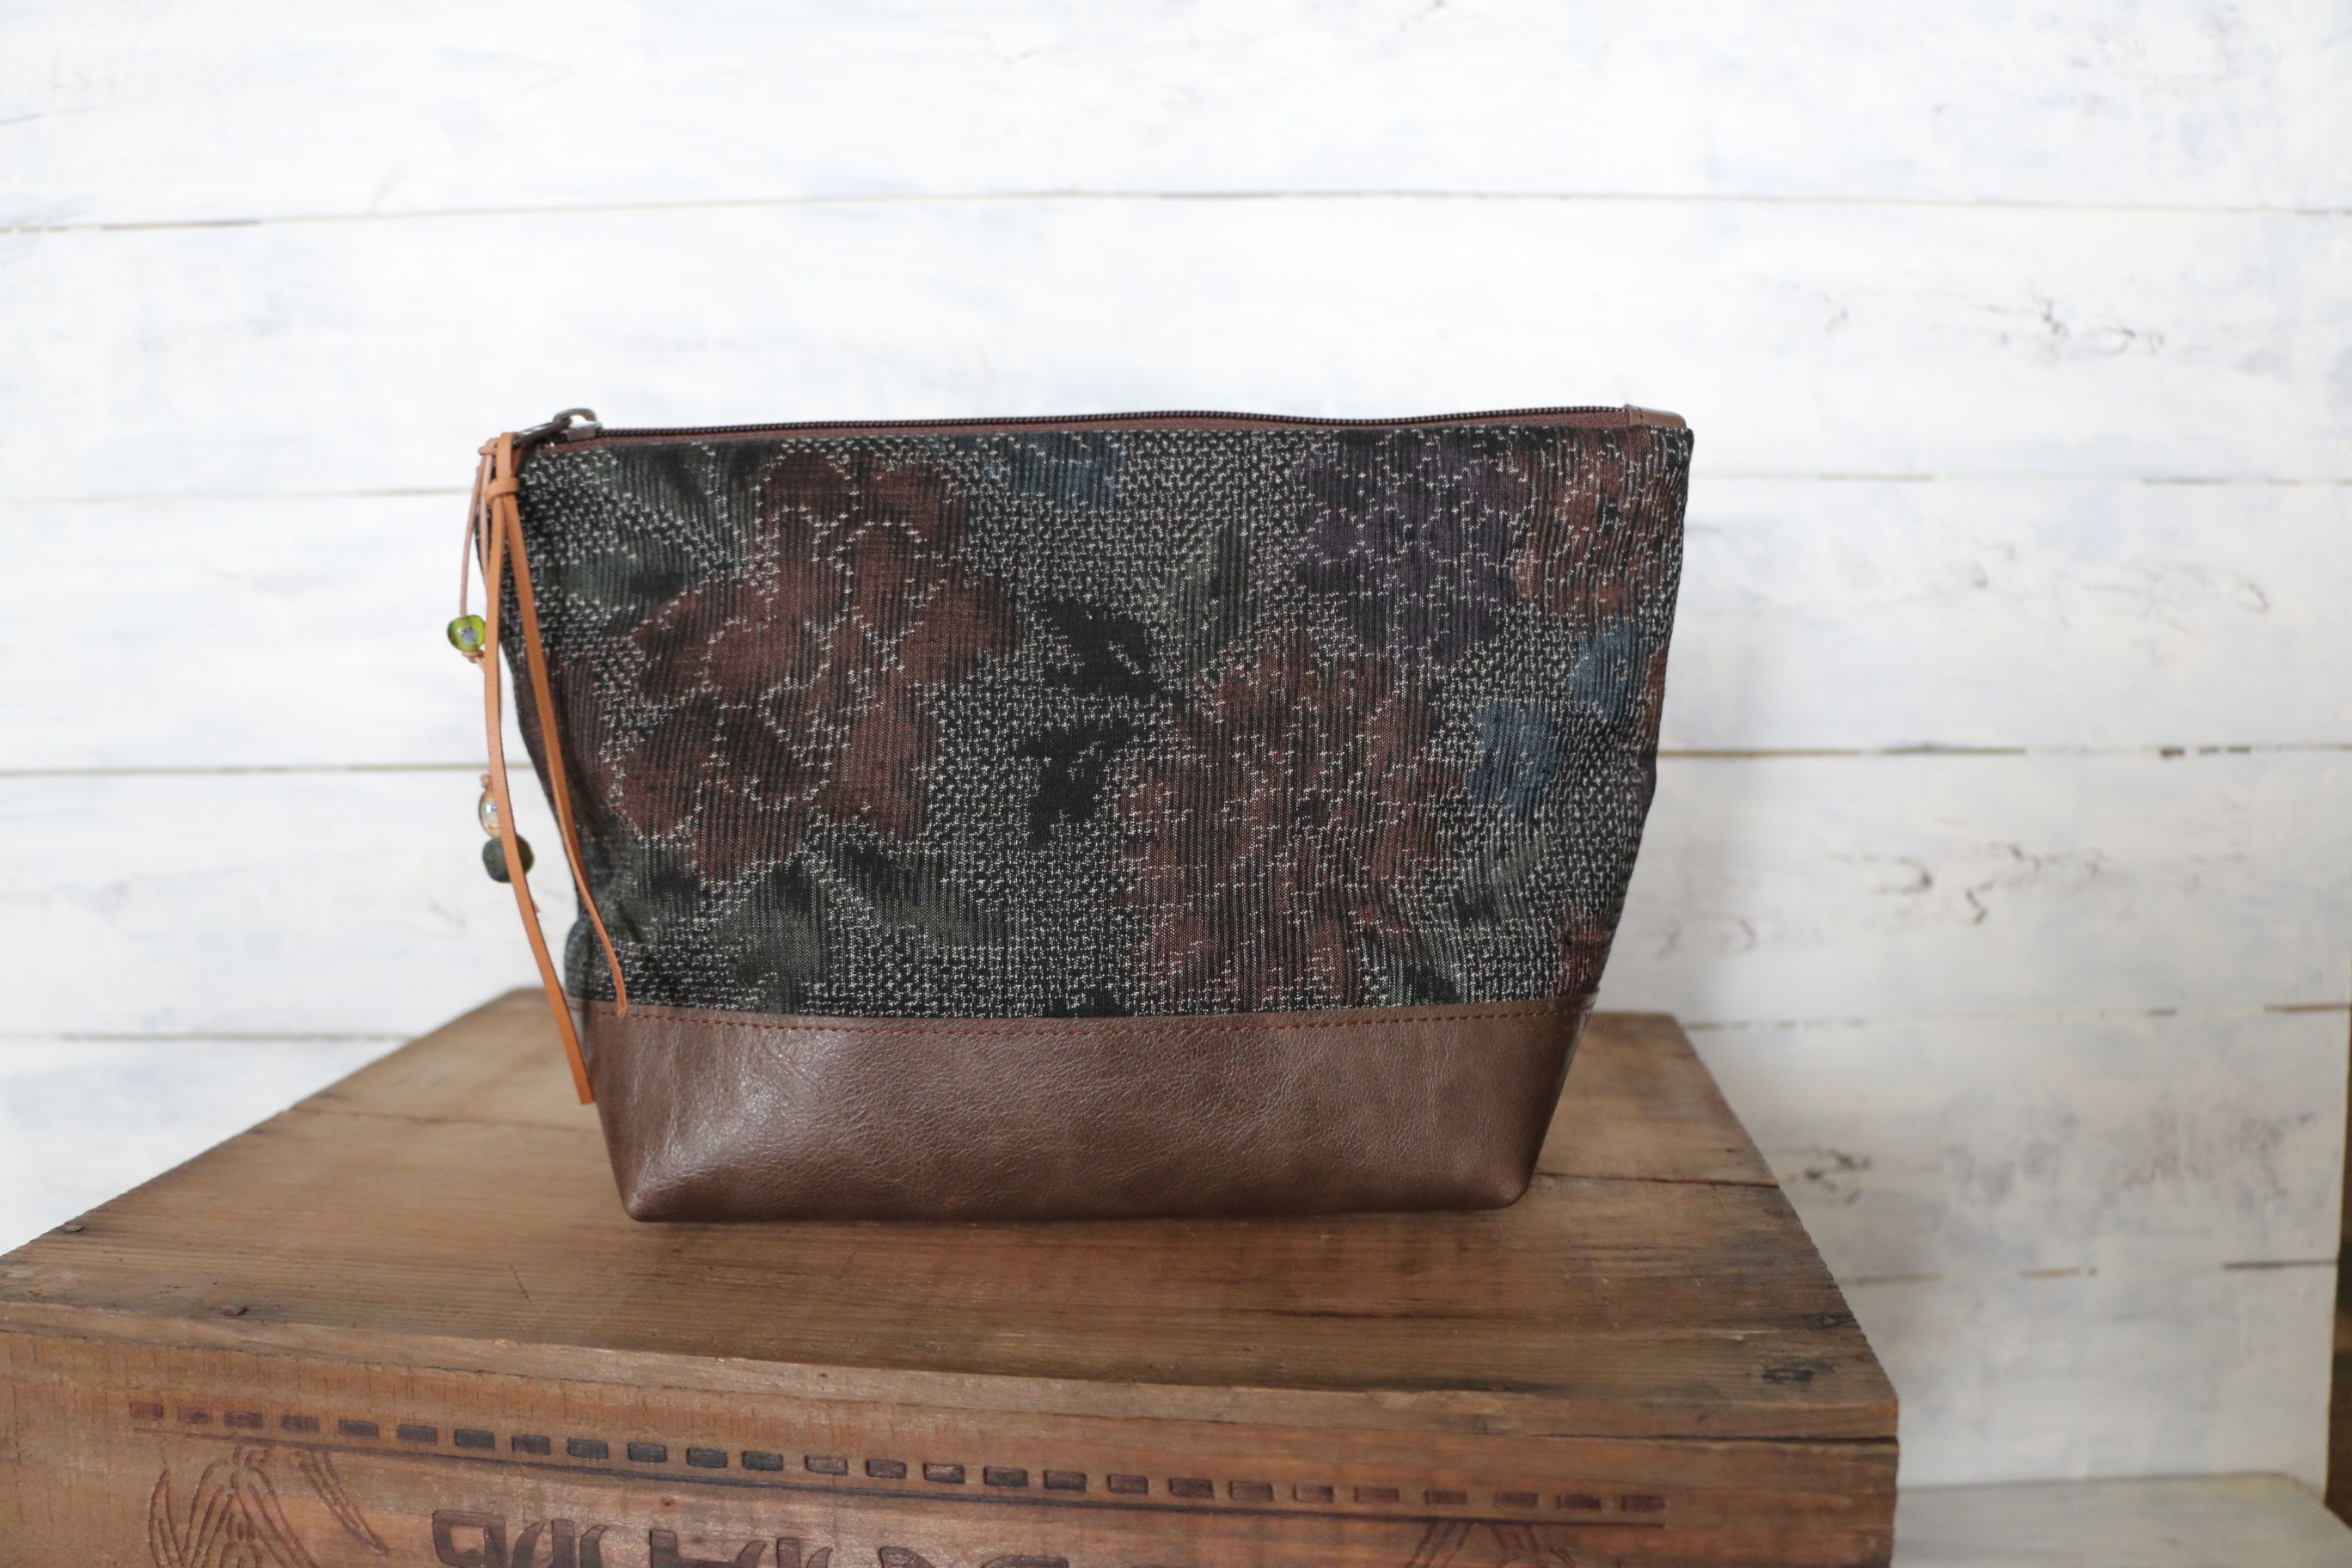 This beautiful Large size Kimono × Leather Pouch is made of Flower motif Japanese Vintage woven Kimono fabric ( 100% Silk ) and Beautiful Italian brown leather.This Pouch can be as a makeup pouch, Travel Pouch ,Utility Pouch etc.....  << Approx.measurements >> W 10.6 inches ( 27 cm ) TOP /// W 6.9 inches ( 17.5 cm ) Bottom /// H 6.3 inches ( 16 cm ) Gusset along bottom 3.95 inches ( 10 cm ) $62 https://www.etsy.com/listing/201000397/large-size-utility-pouch-japanese